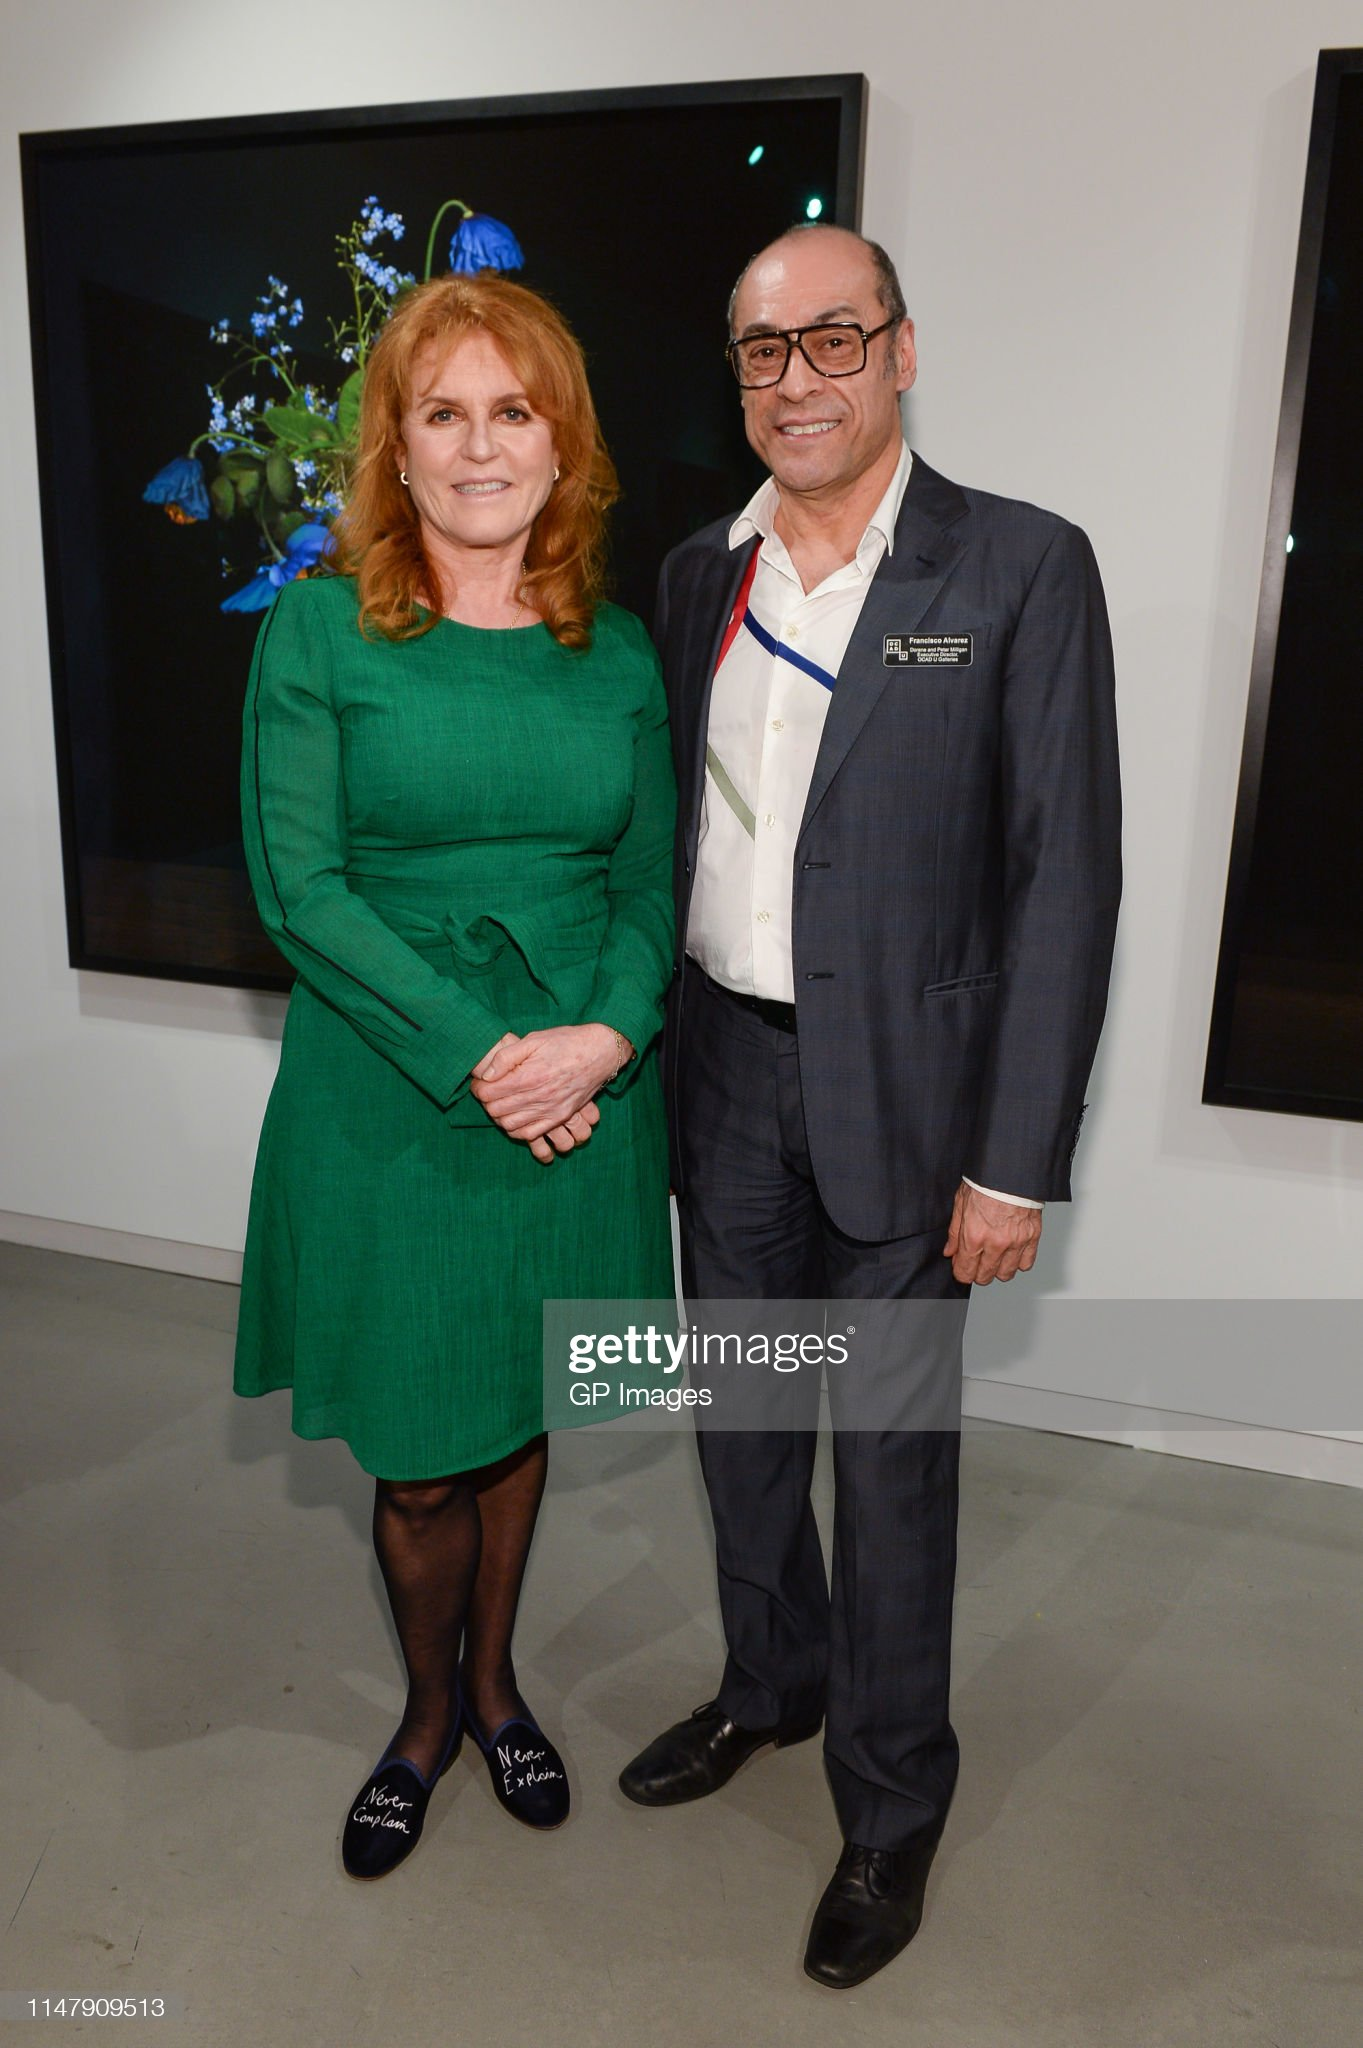 https://media.gettyimages.com/photos/duchess-of-york-sarah-ferguson-and-curator-francisco-alvarez-attend-picture-id1147909513?s=2048x2048